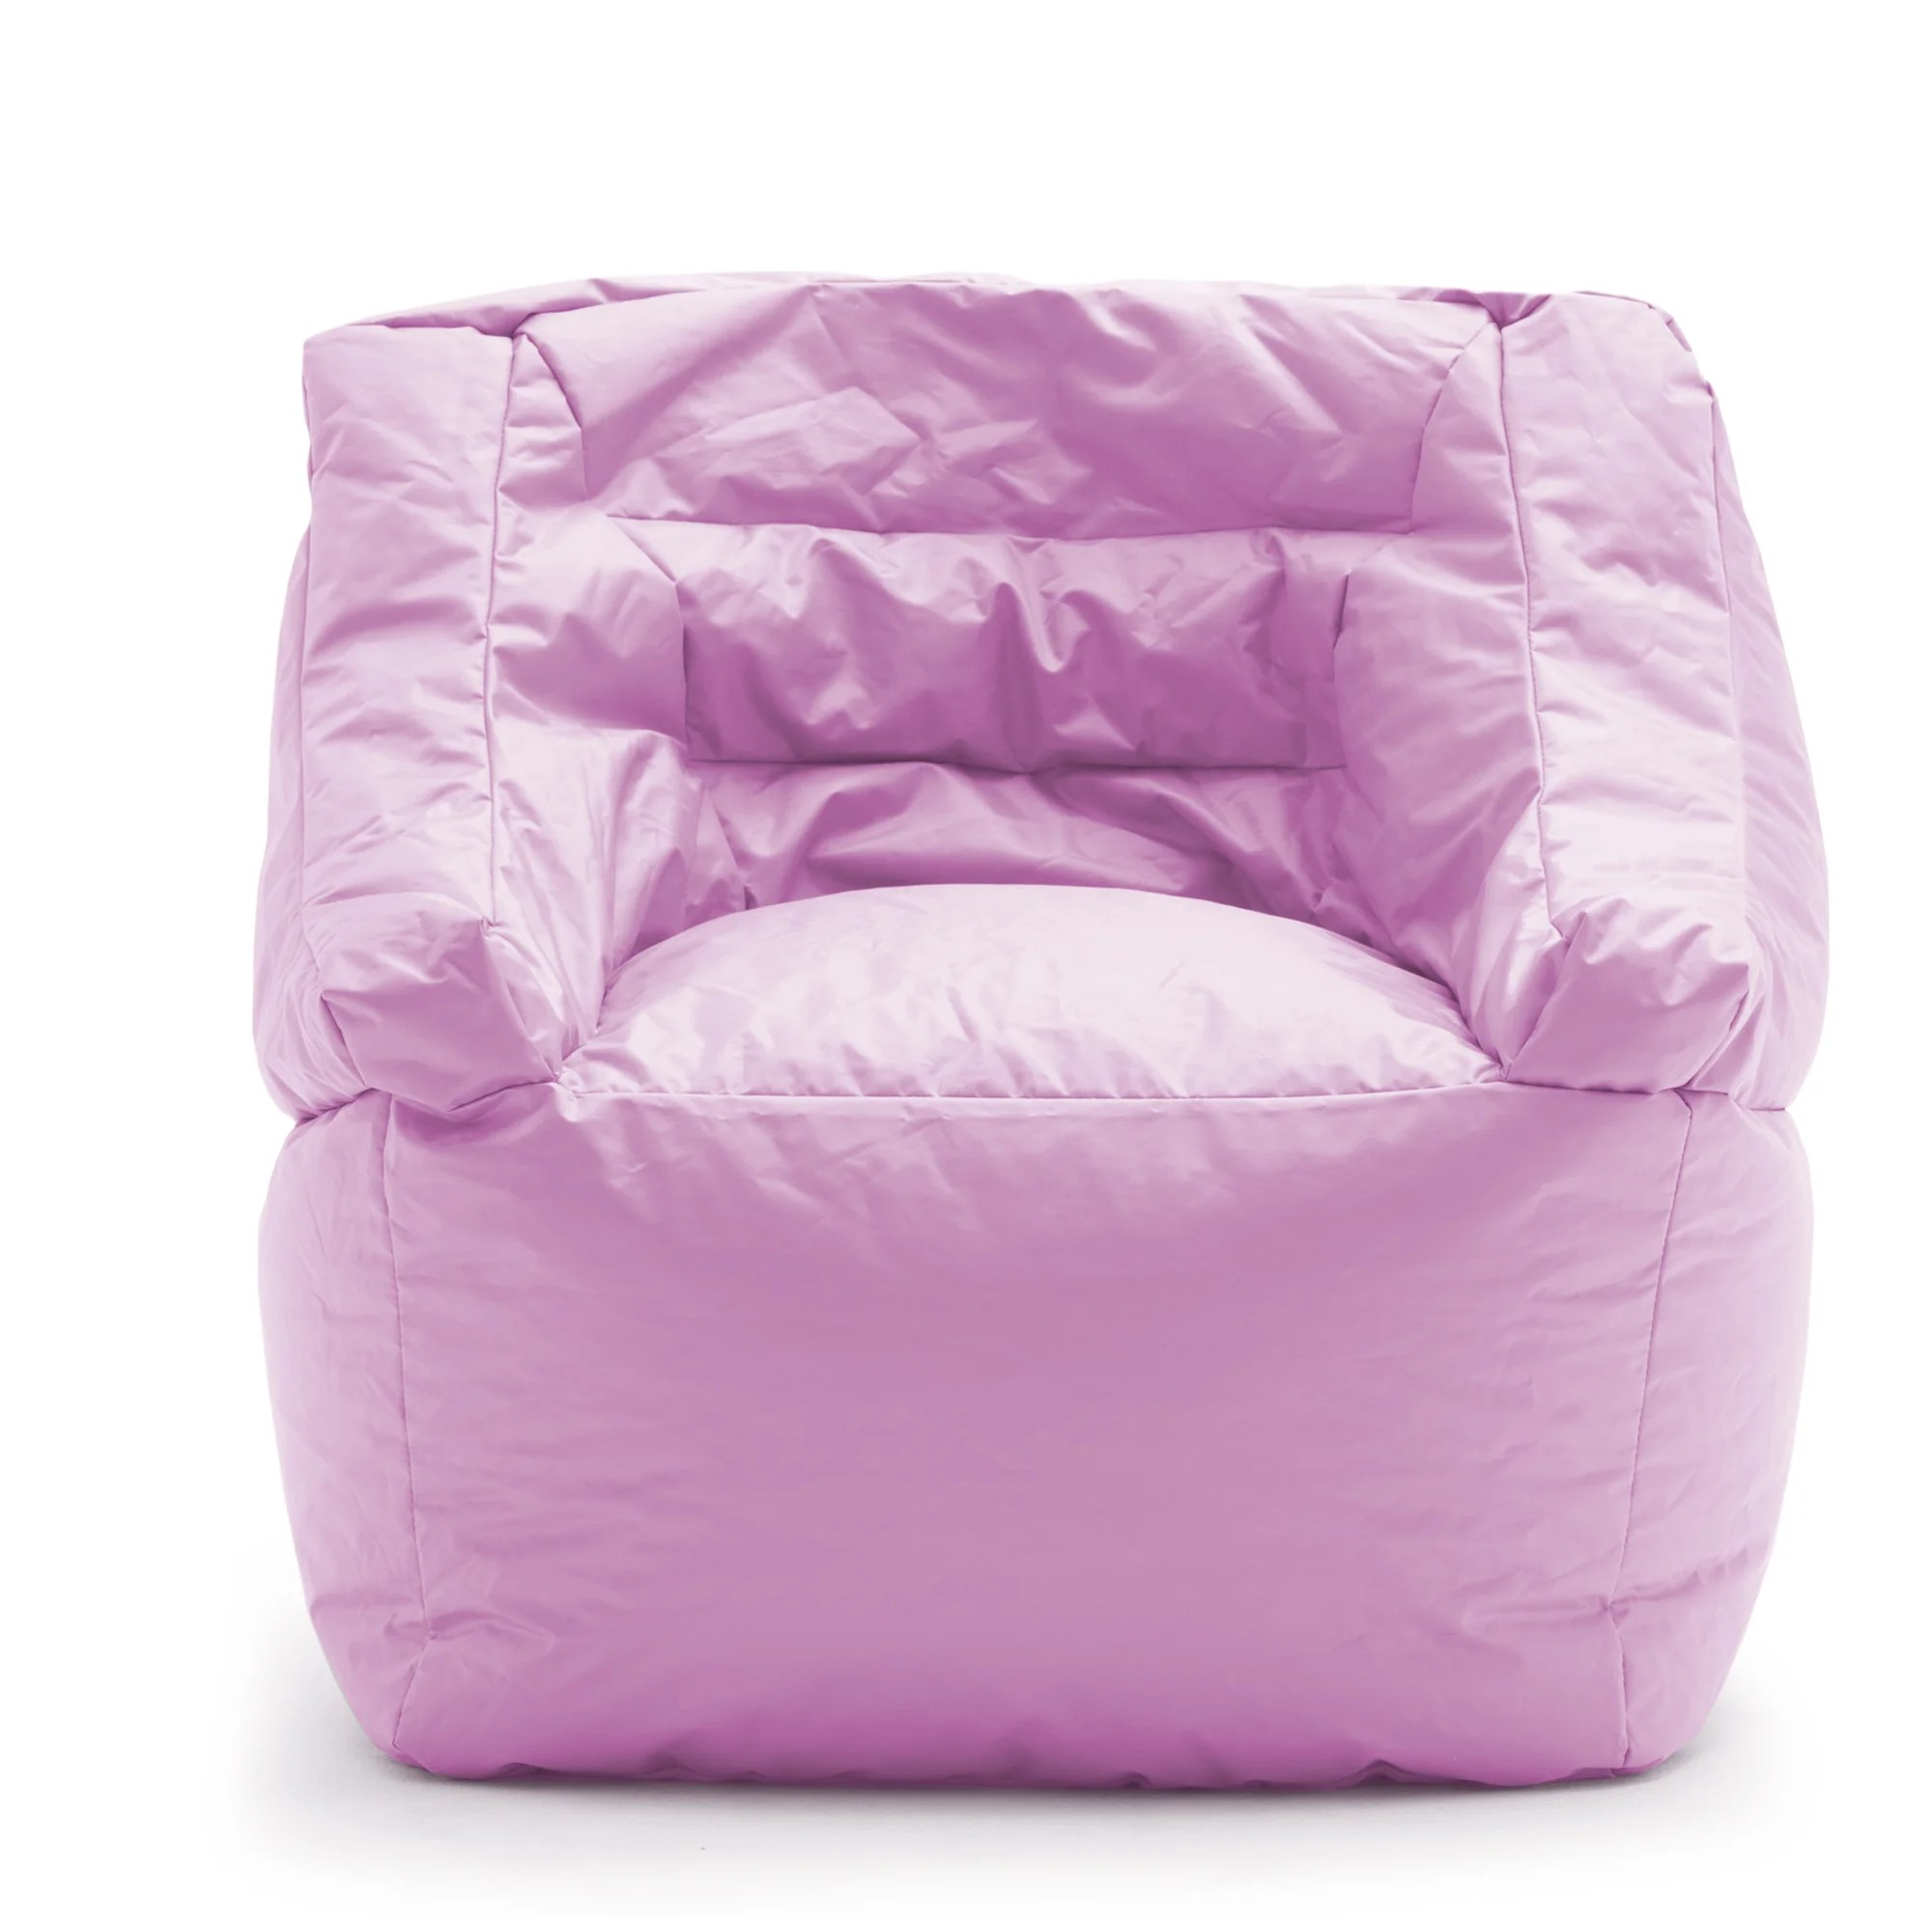 big joe bean bag chair reviews wedding cover hire toowoomba comfort research lucky and